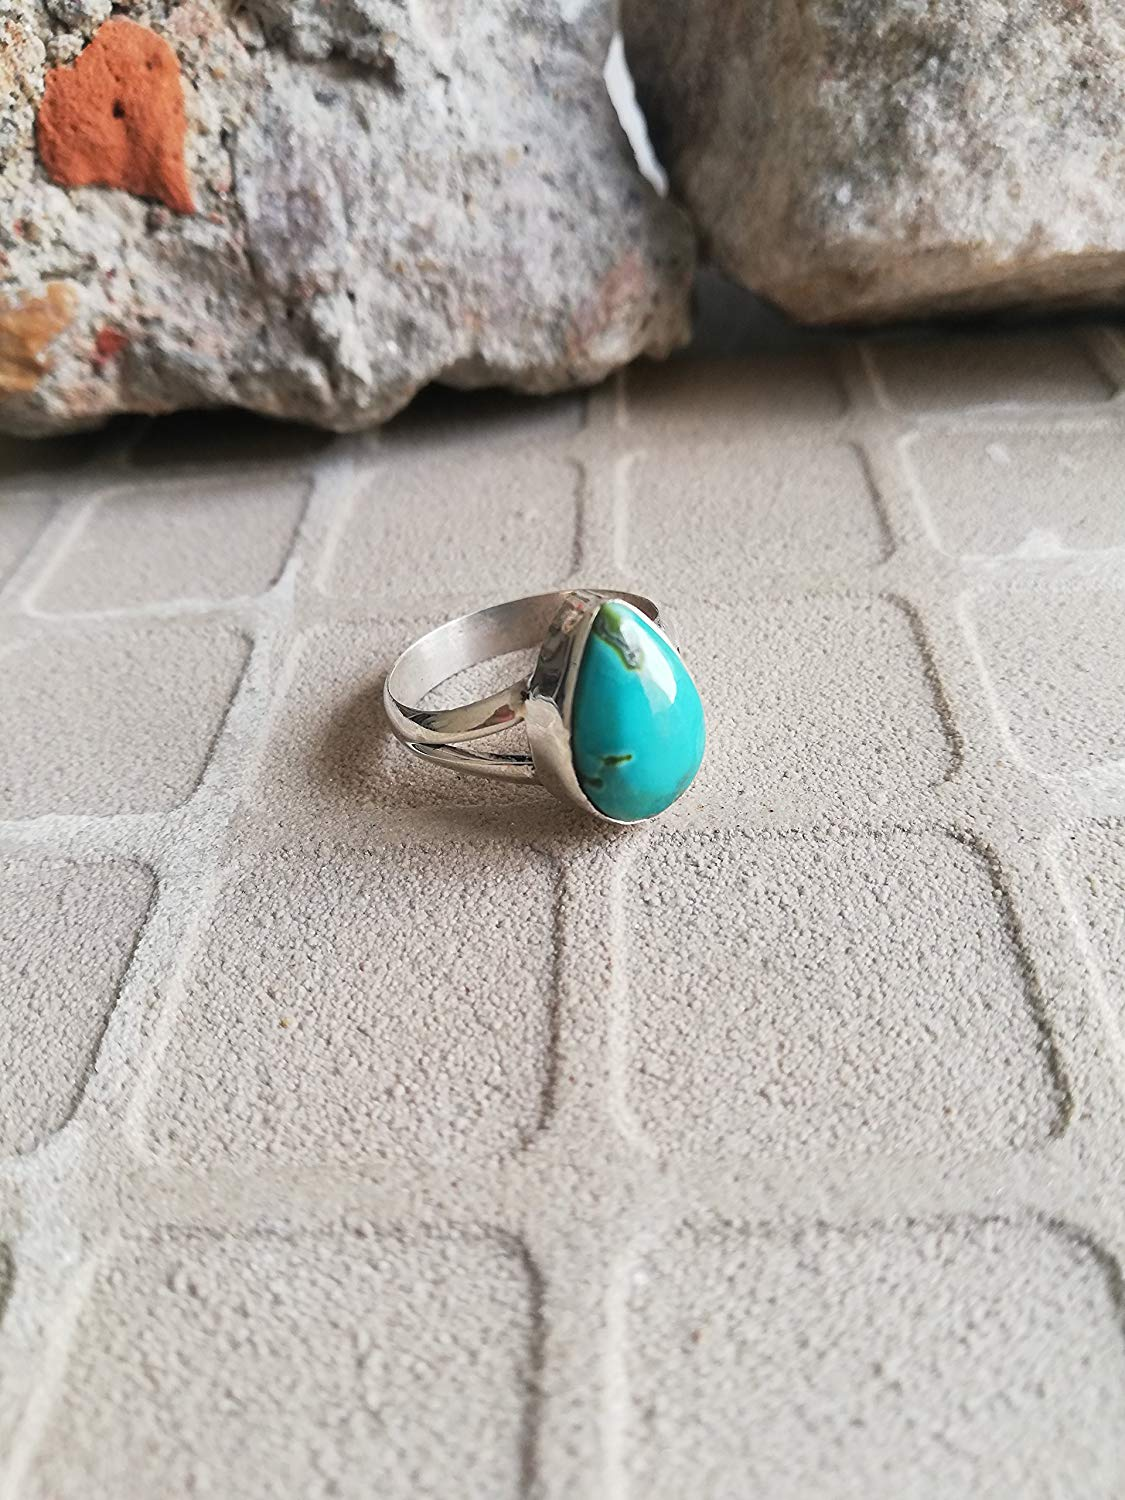 Natural Turquoise Ring, 925 Sterling Silver, Teardrop Shape Ring, Green Jewelry, Boho Ring, Anniversary Ring, Birthstone Ring, Handmade Jewelry, Minimalist Ring, Stacking Ring, Gift, US All Size Ring